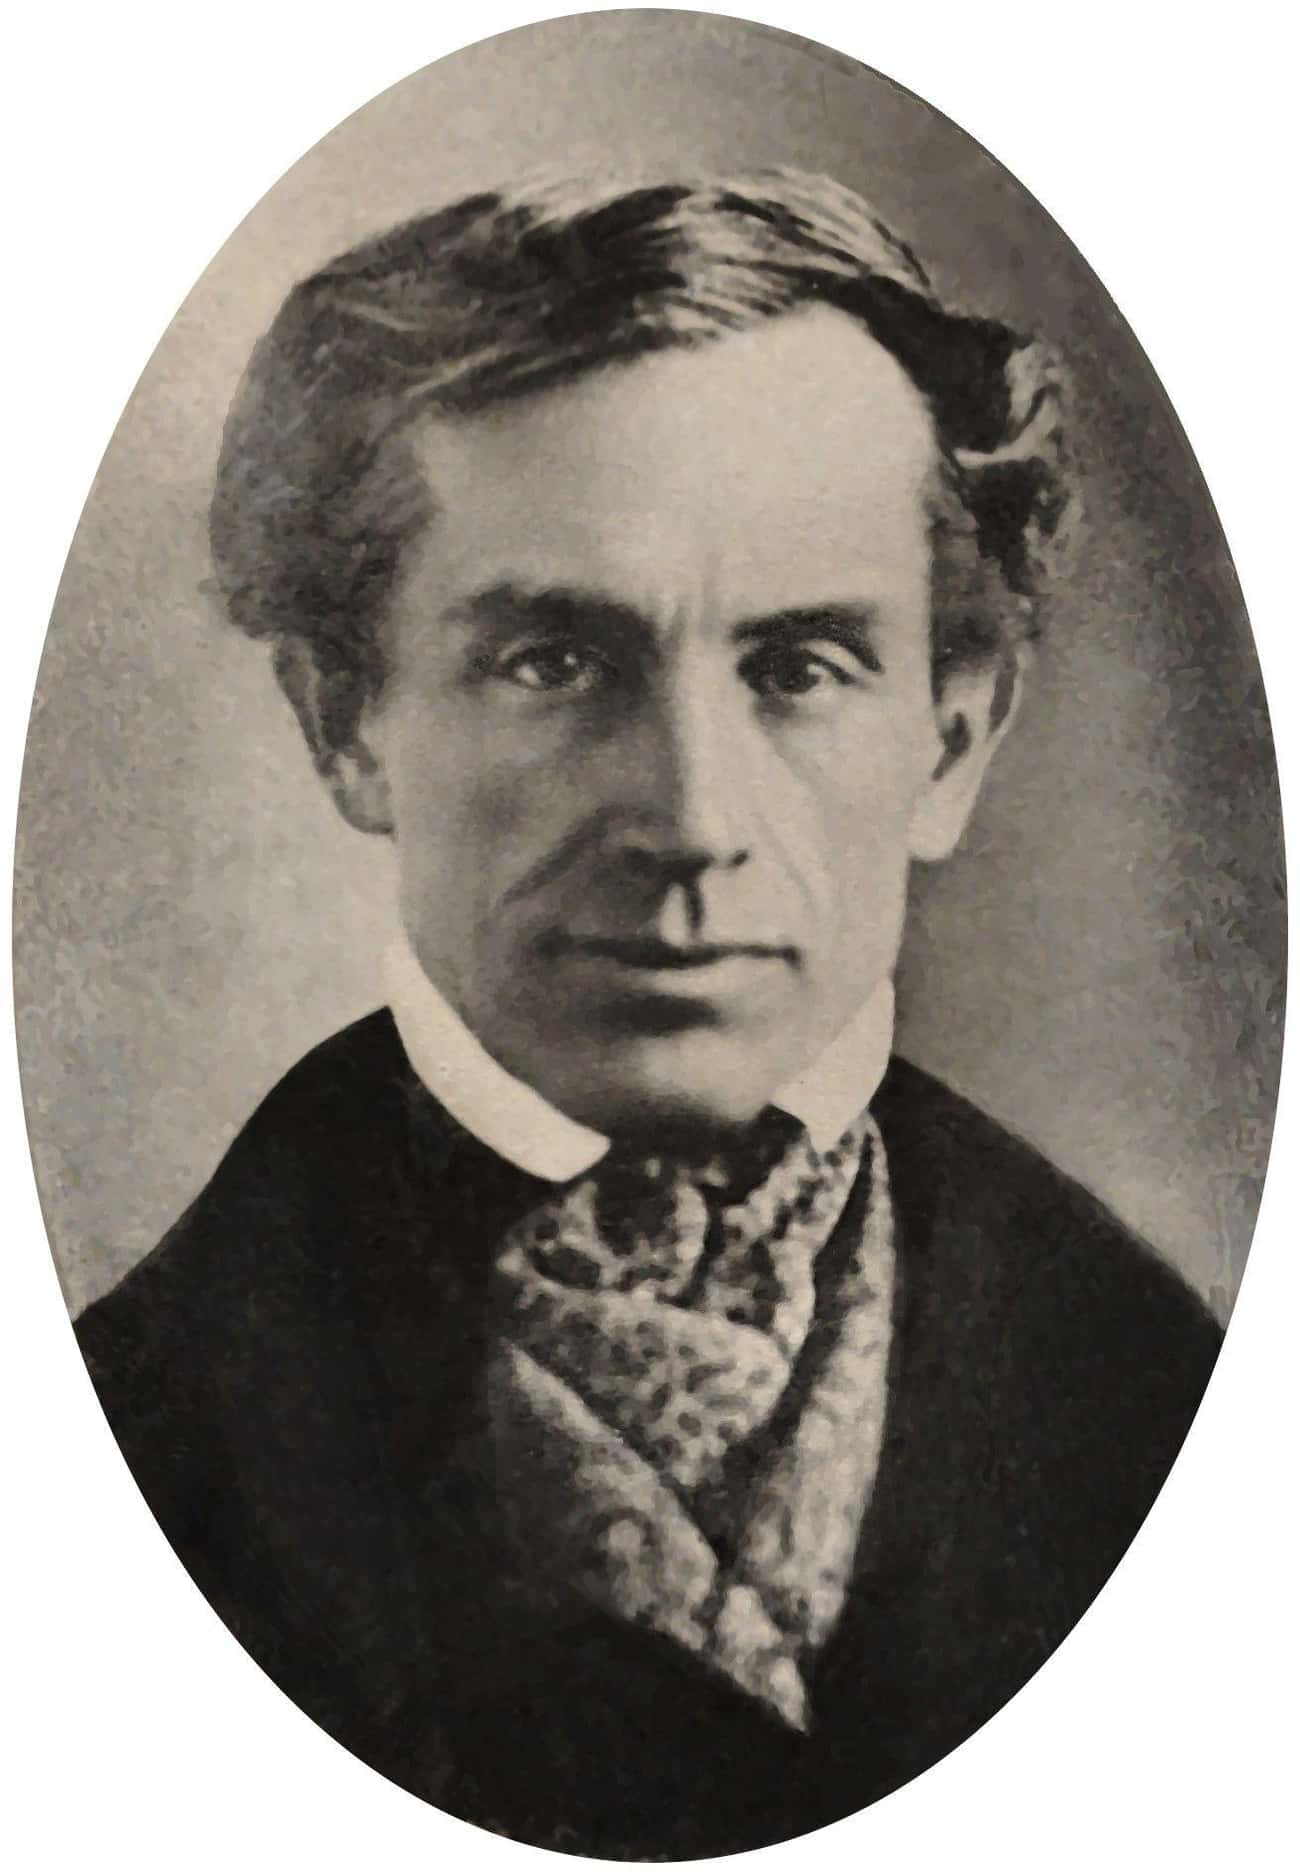 Samuel Morse Created Morse Code After Being Out Of Town When His Wife Died - And He Missed The Funeral